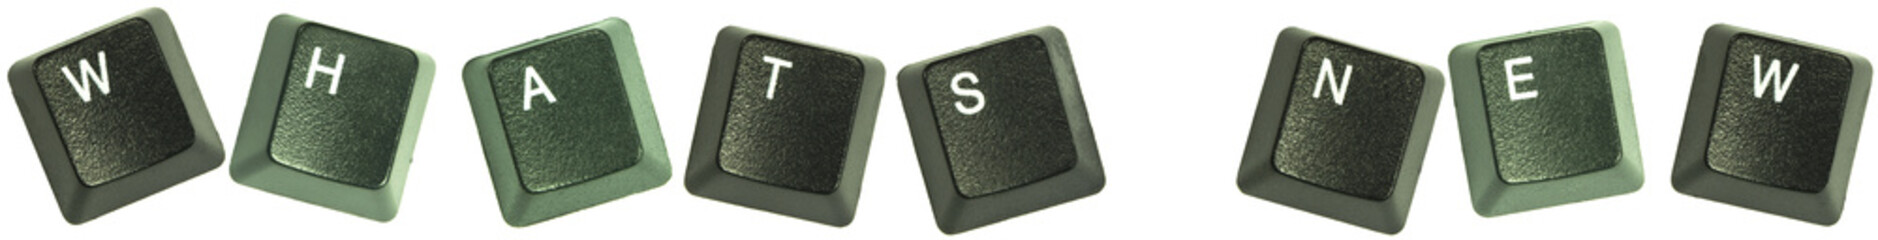 "Keyboard keys spelling out the words ""Whats new""."